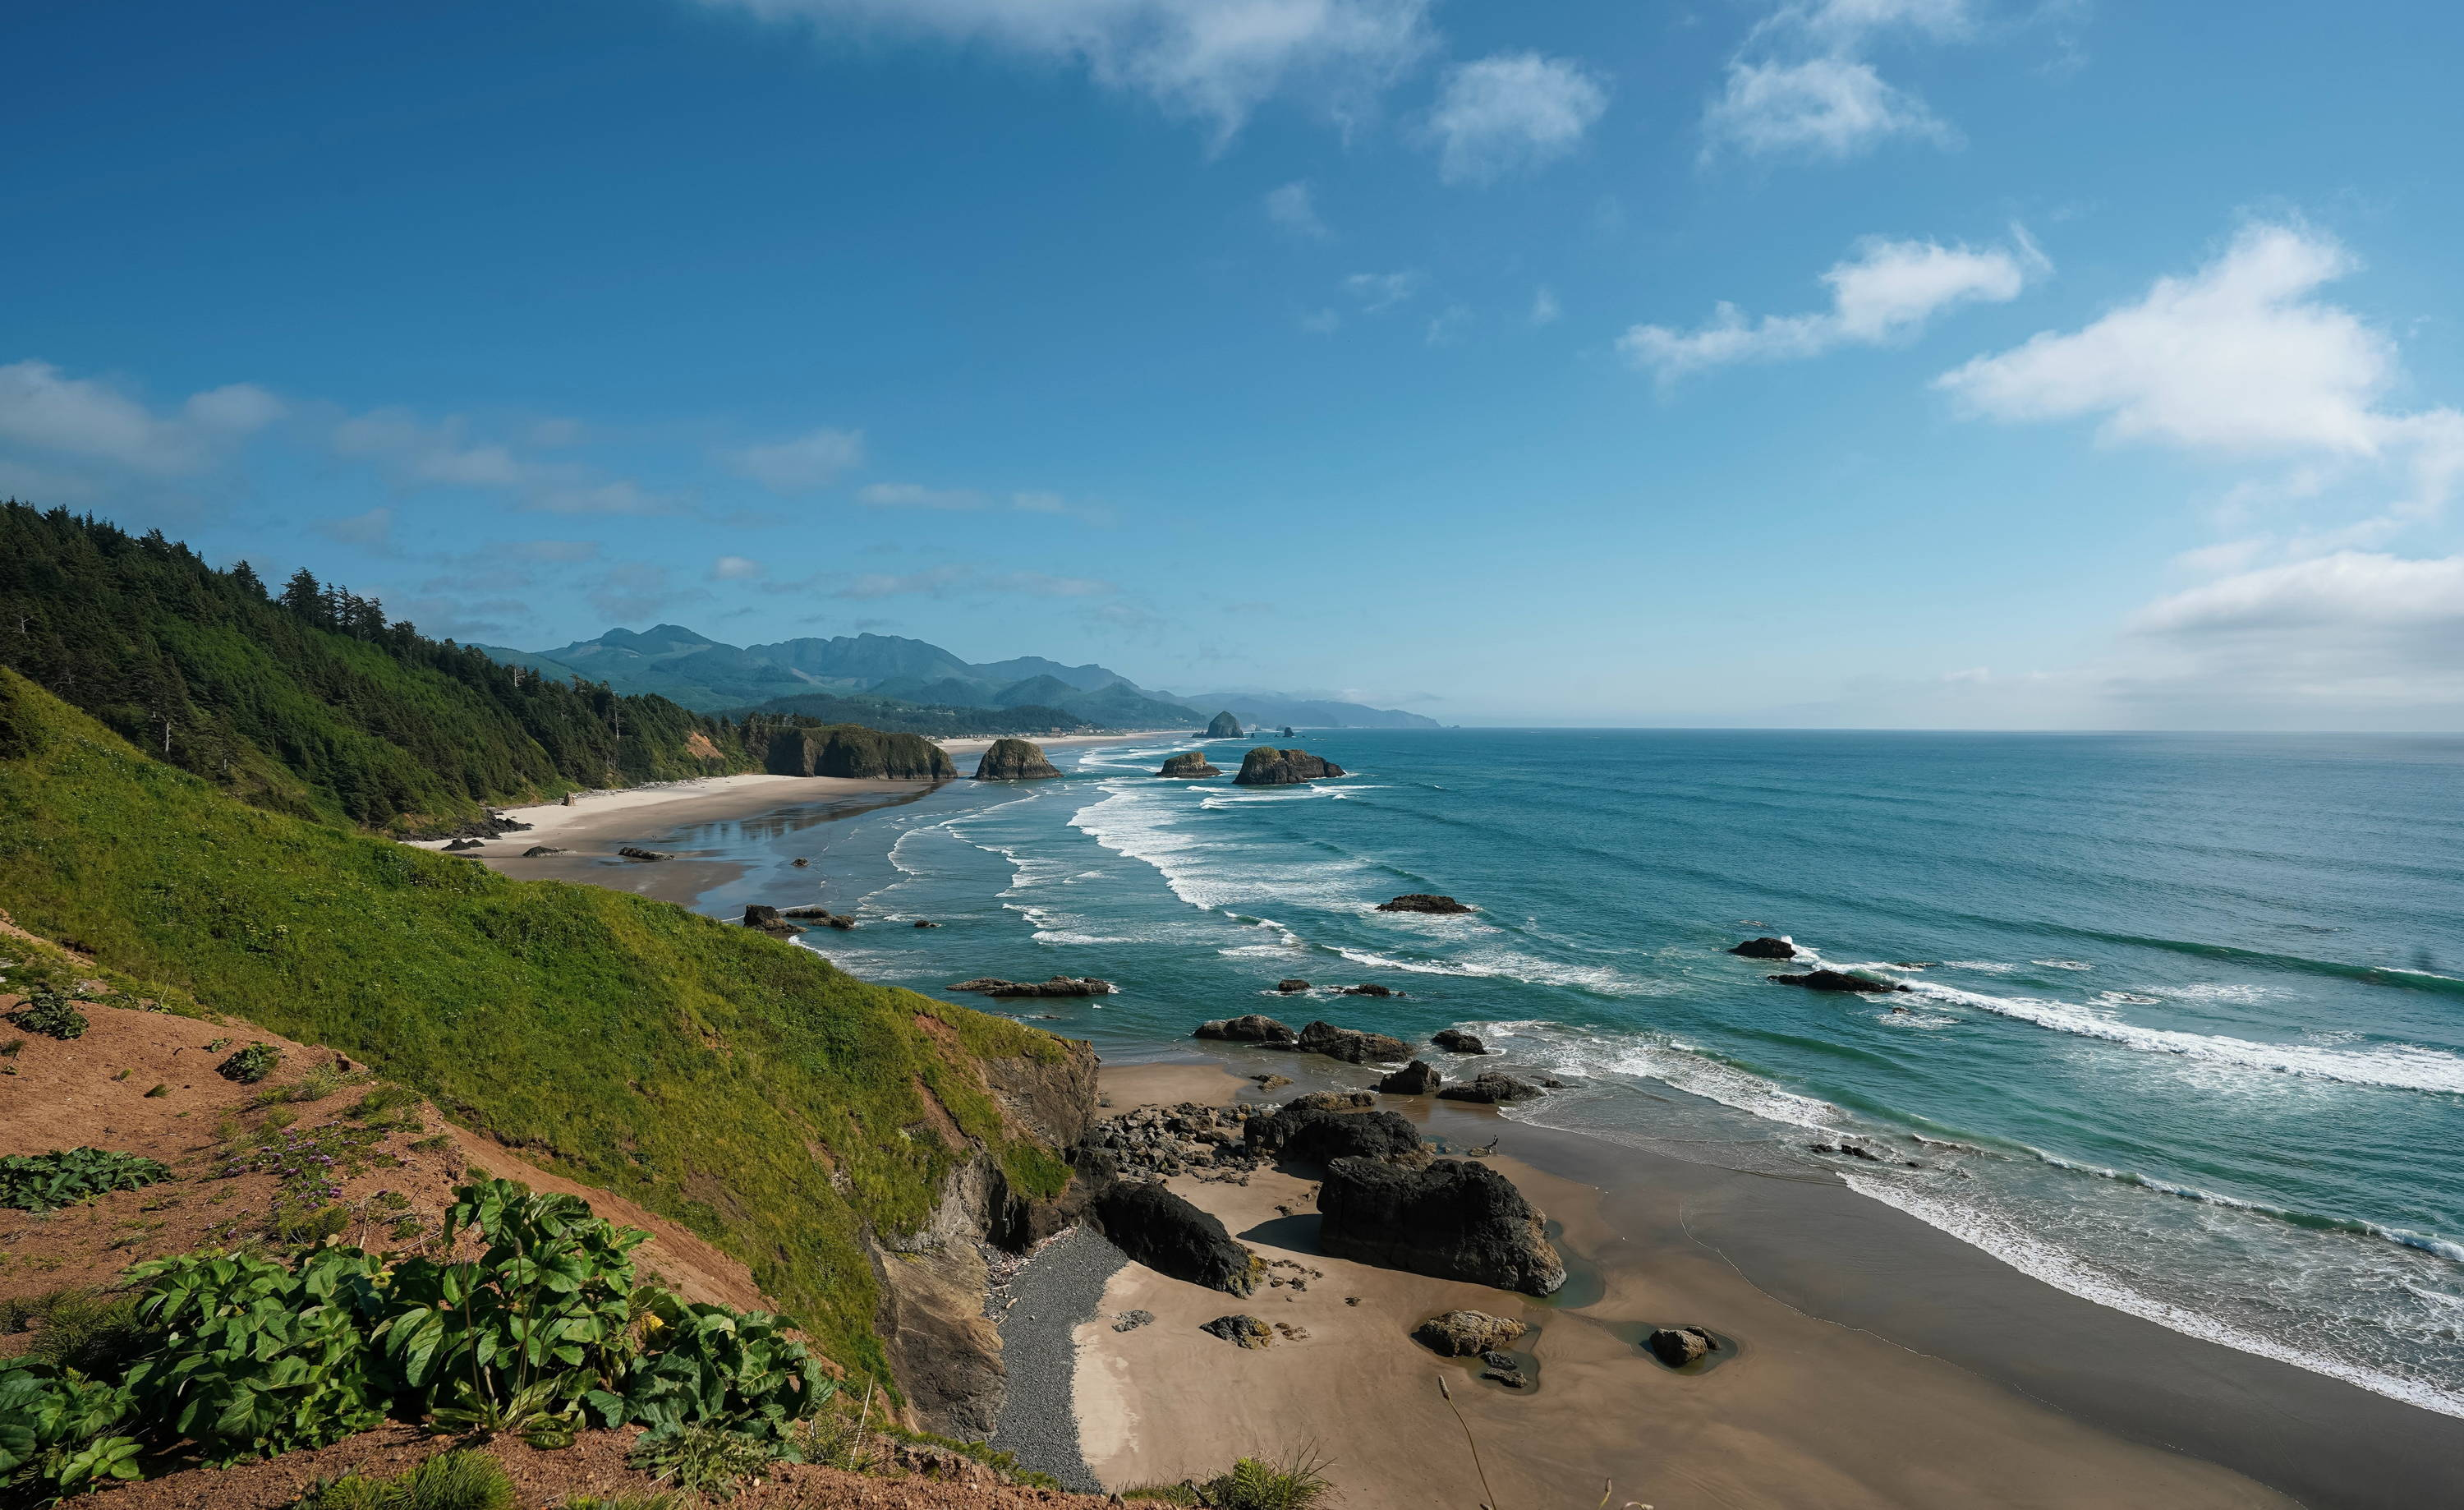 Camping the Oregon Coast. Blue waves crash against rugged rocks and picturesque sand with green hills above.